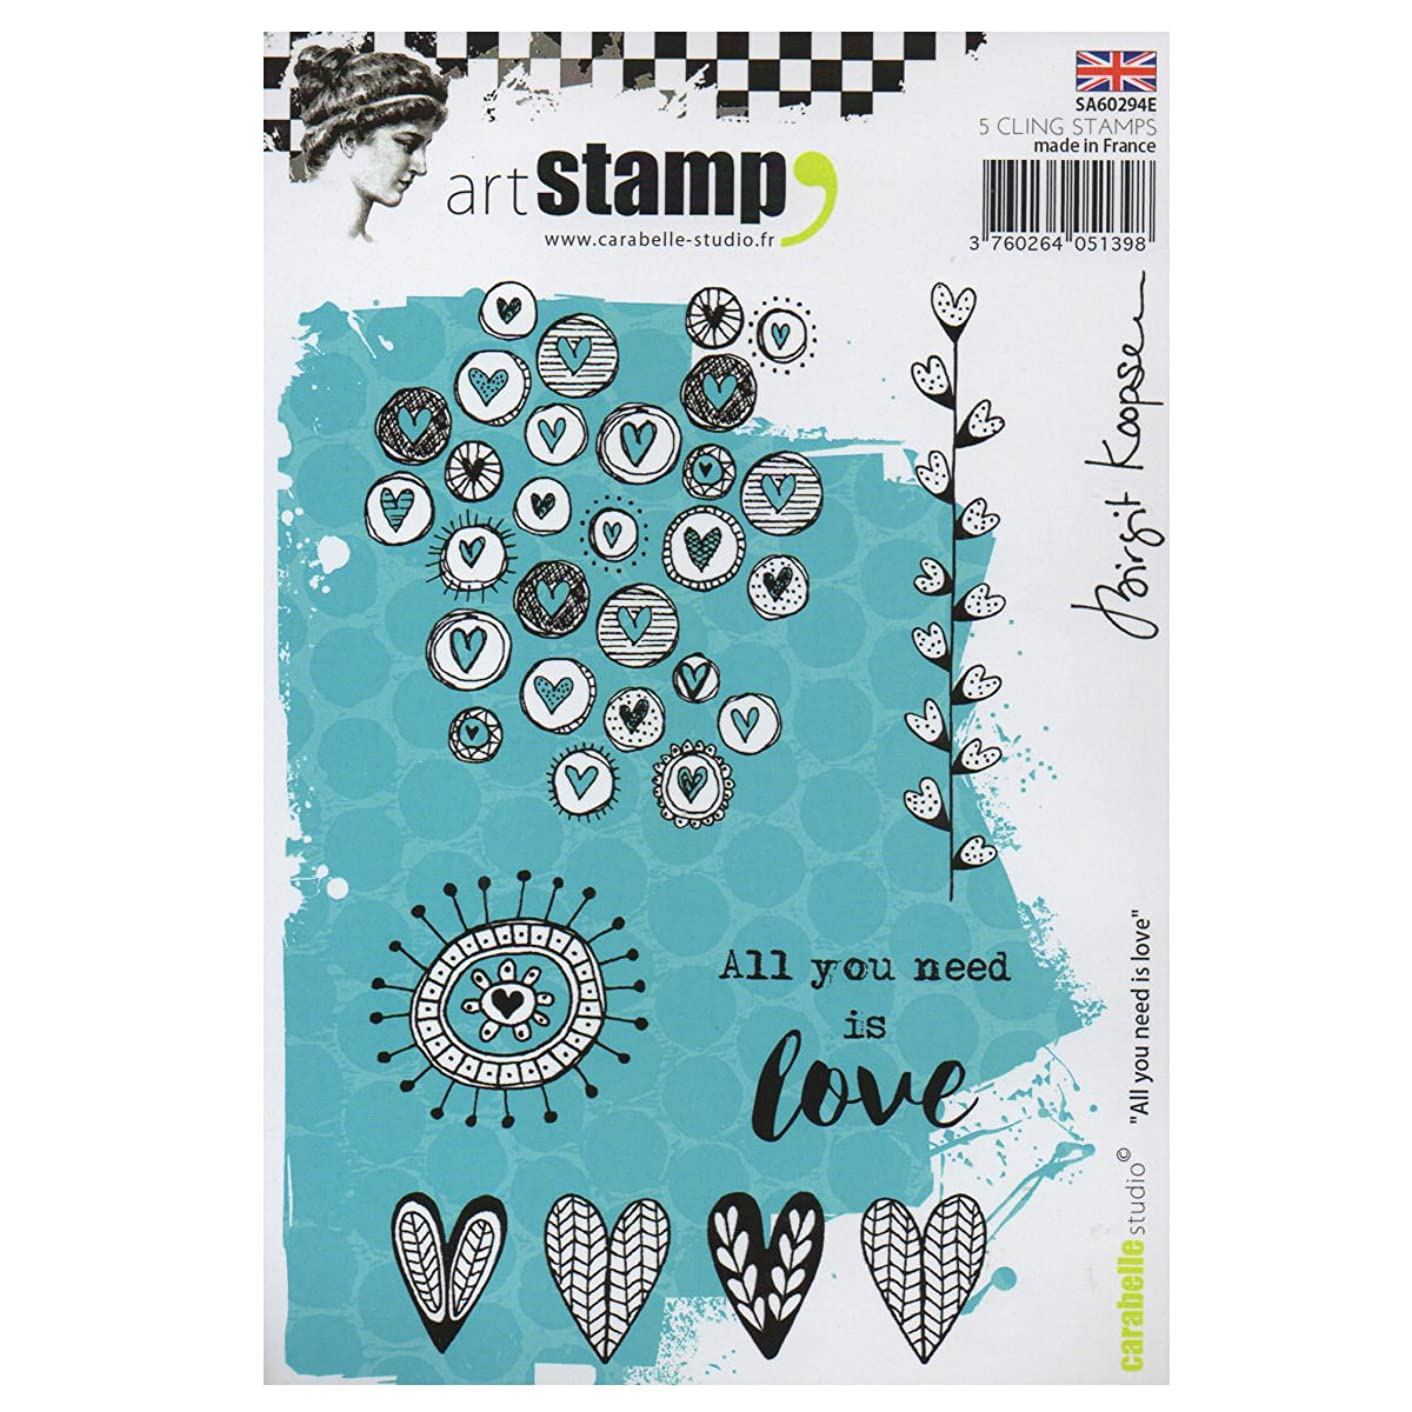 Carabelle Studio Cling Art, All You Need is Love, for Paper Craft Stamping Projects, Cardmaking and Scrapbooks, Multi-Colored, One Size